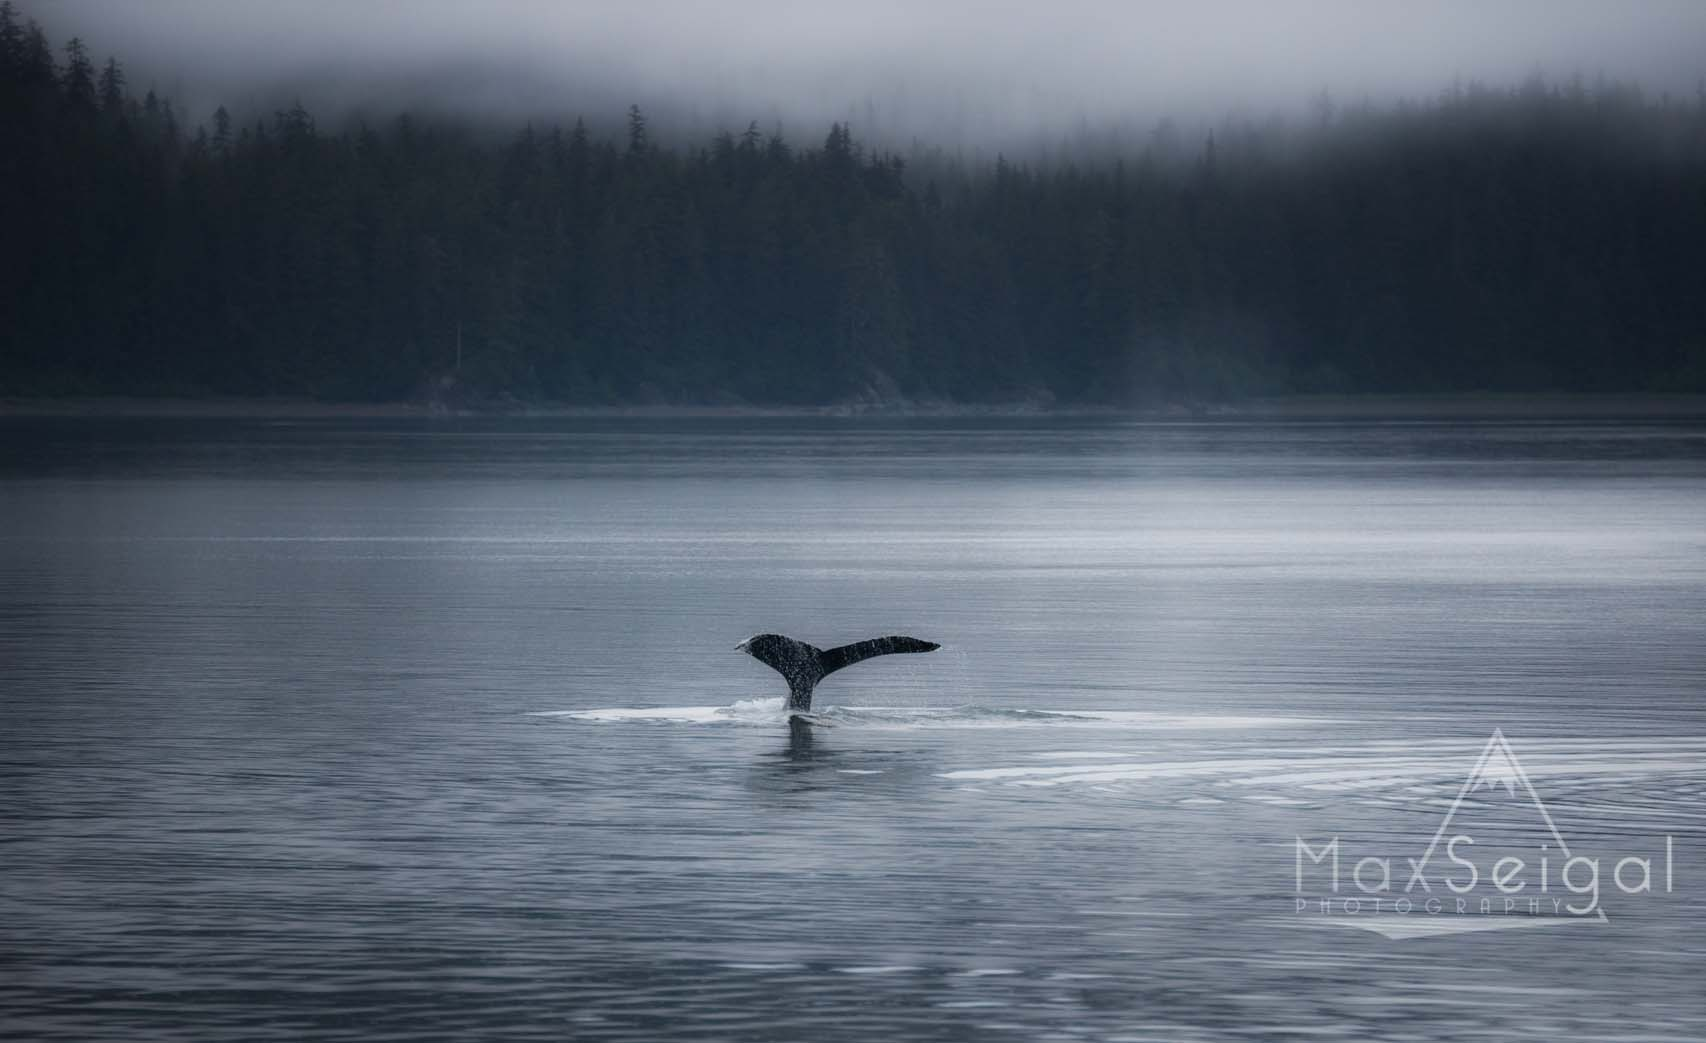 Amazing foggy morning watching humpback whales